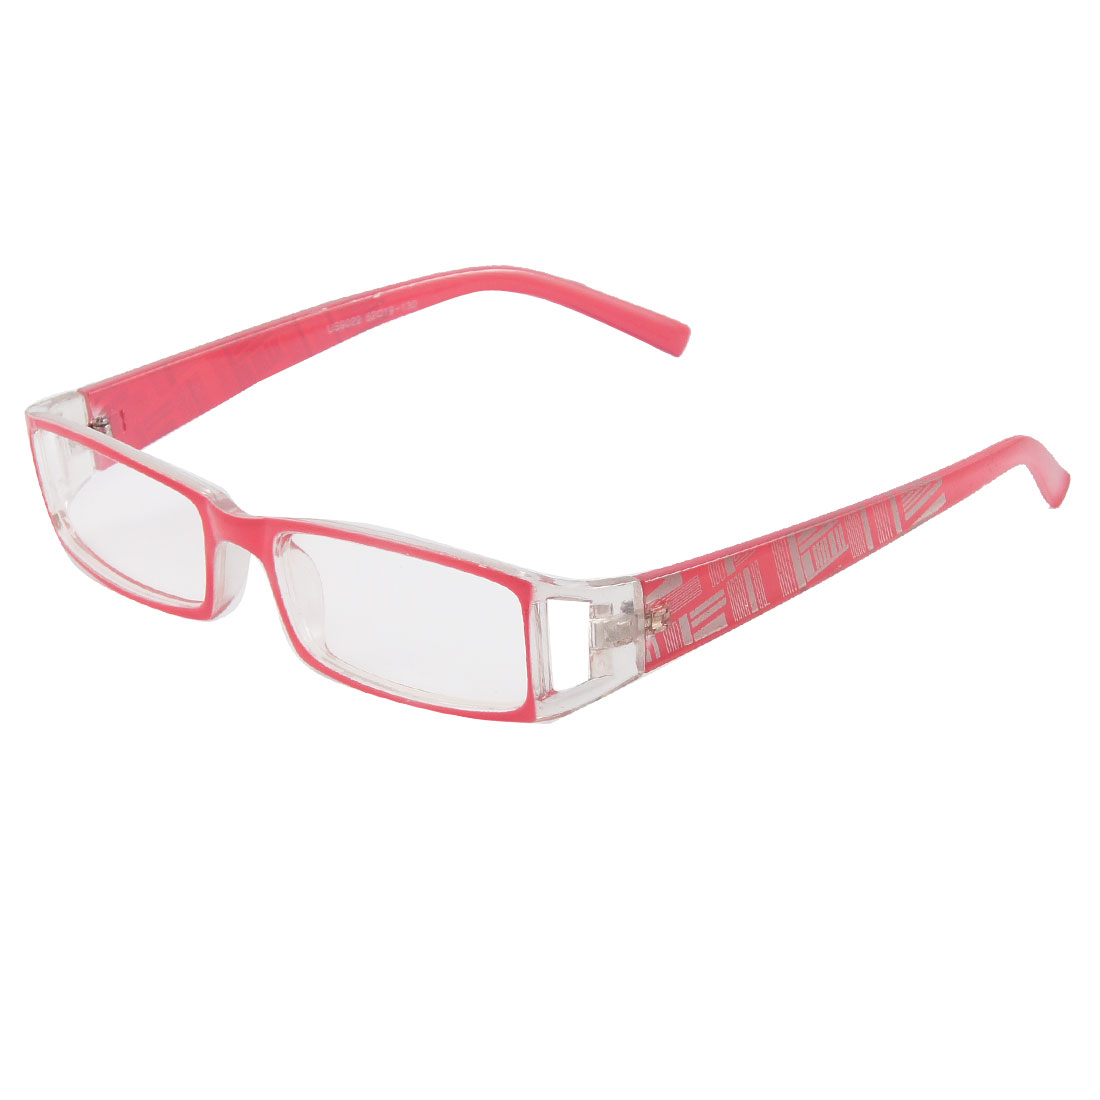 Men Women Pink Clear Plastic Frame Full Rims Clear Lens Plain Glasses